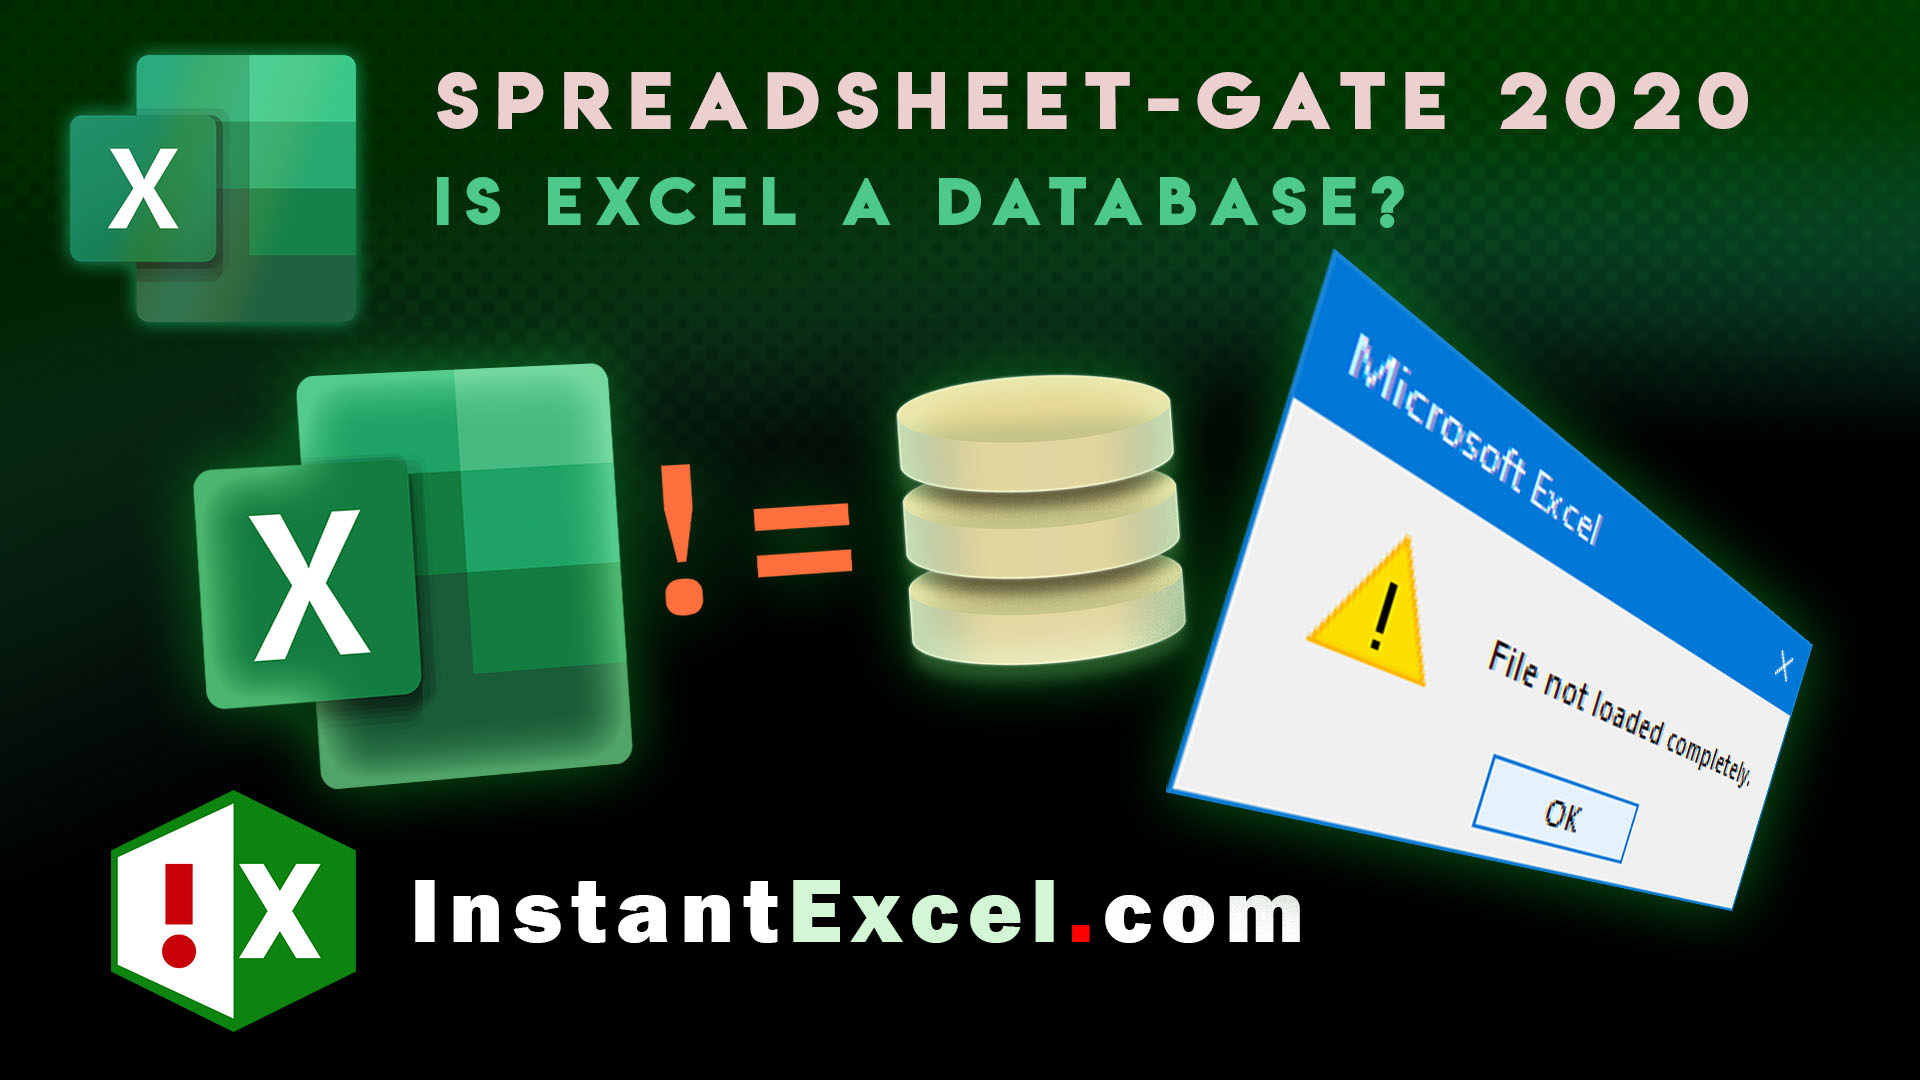 Video: Why Excel isn't a database